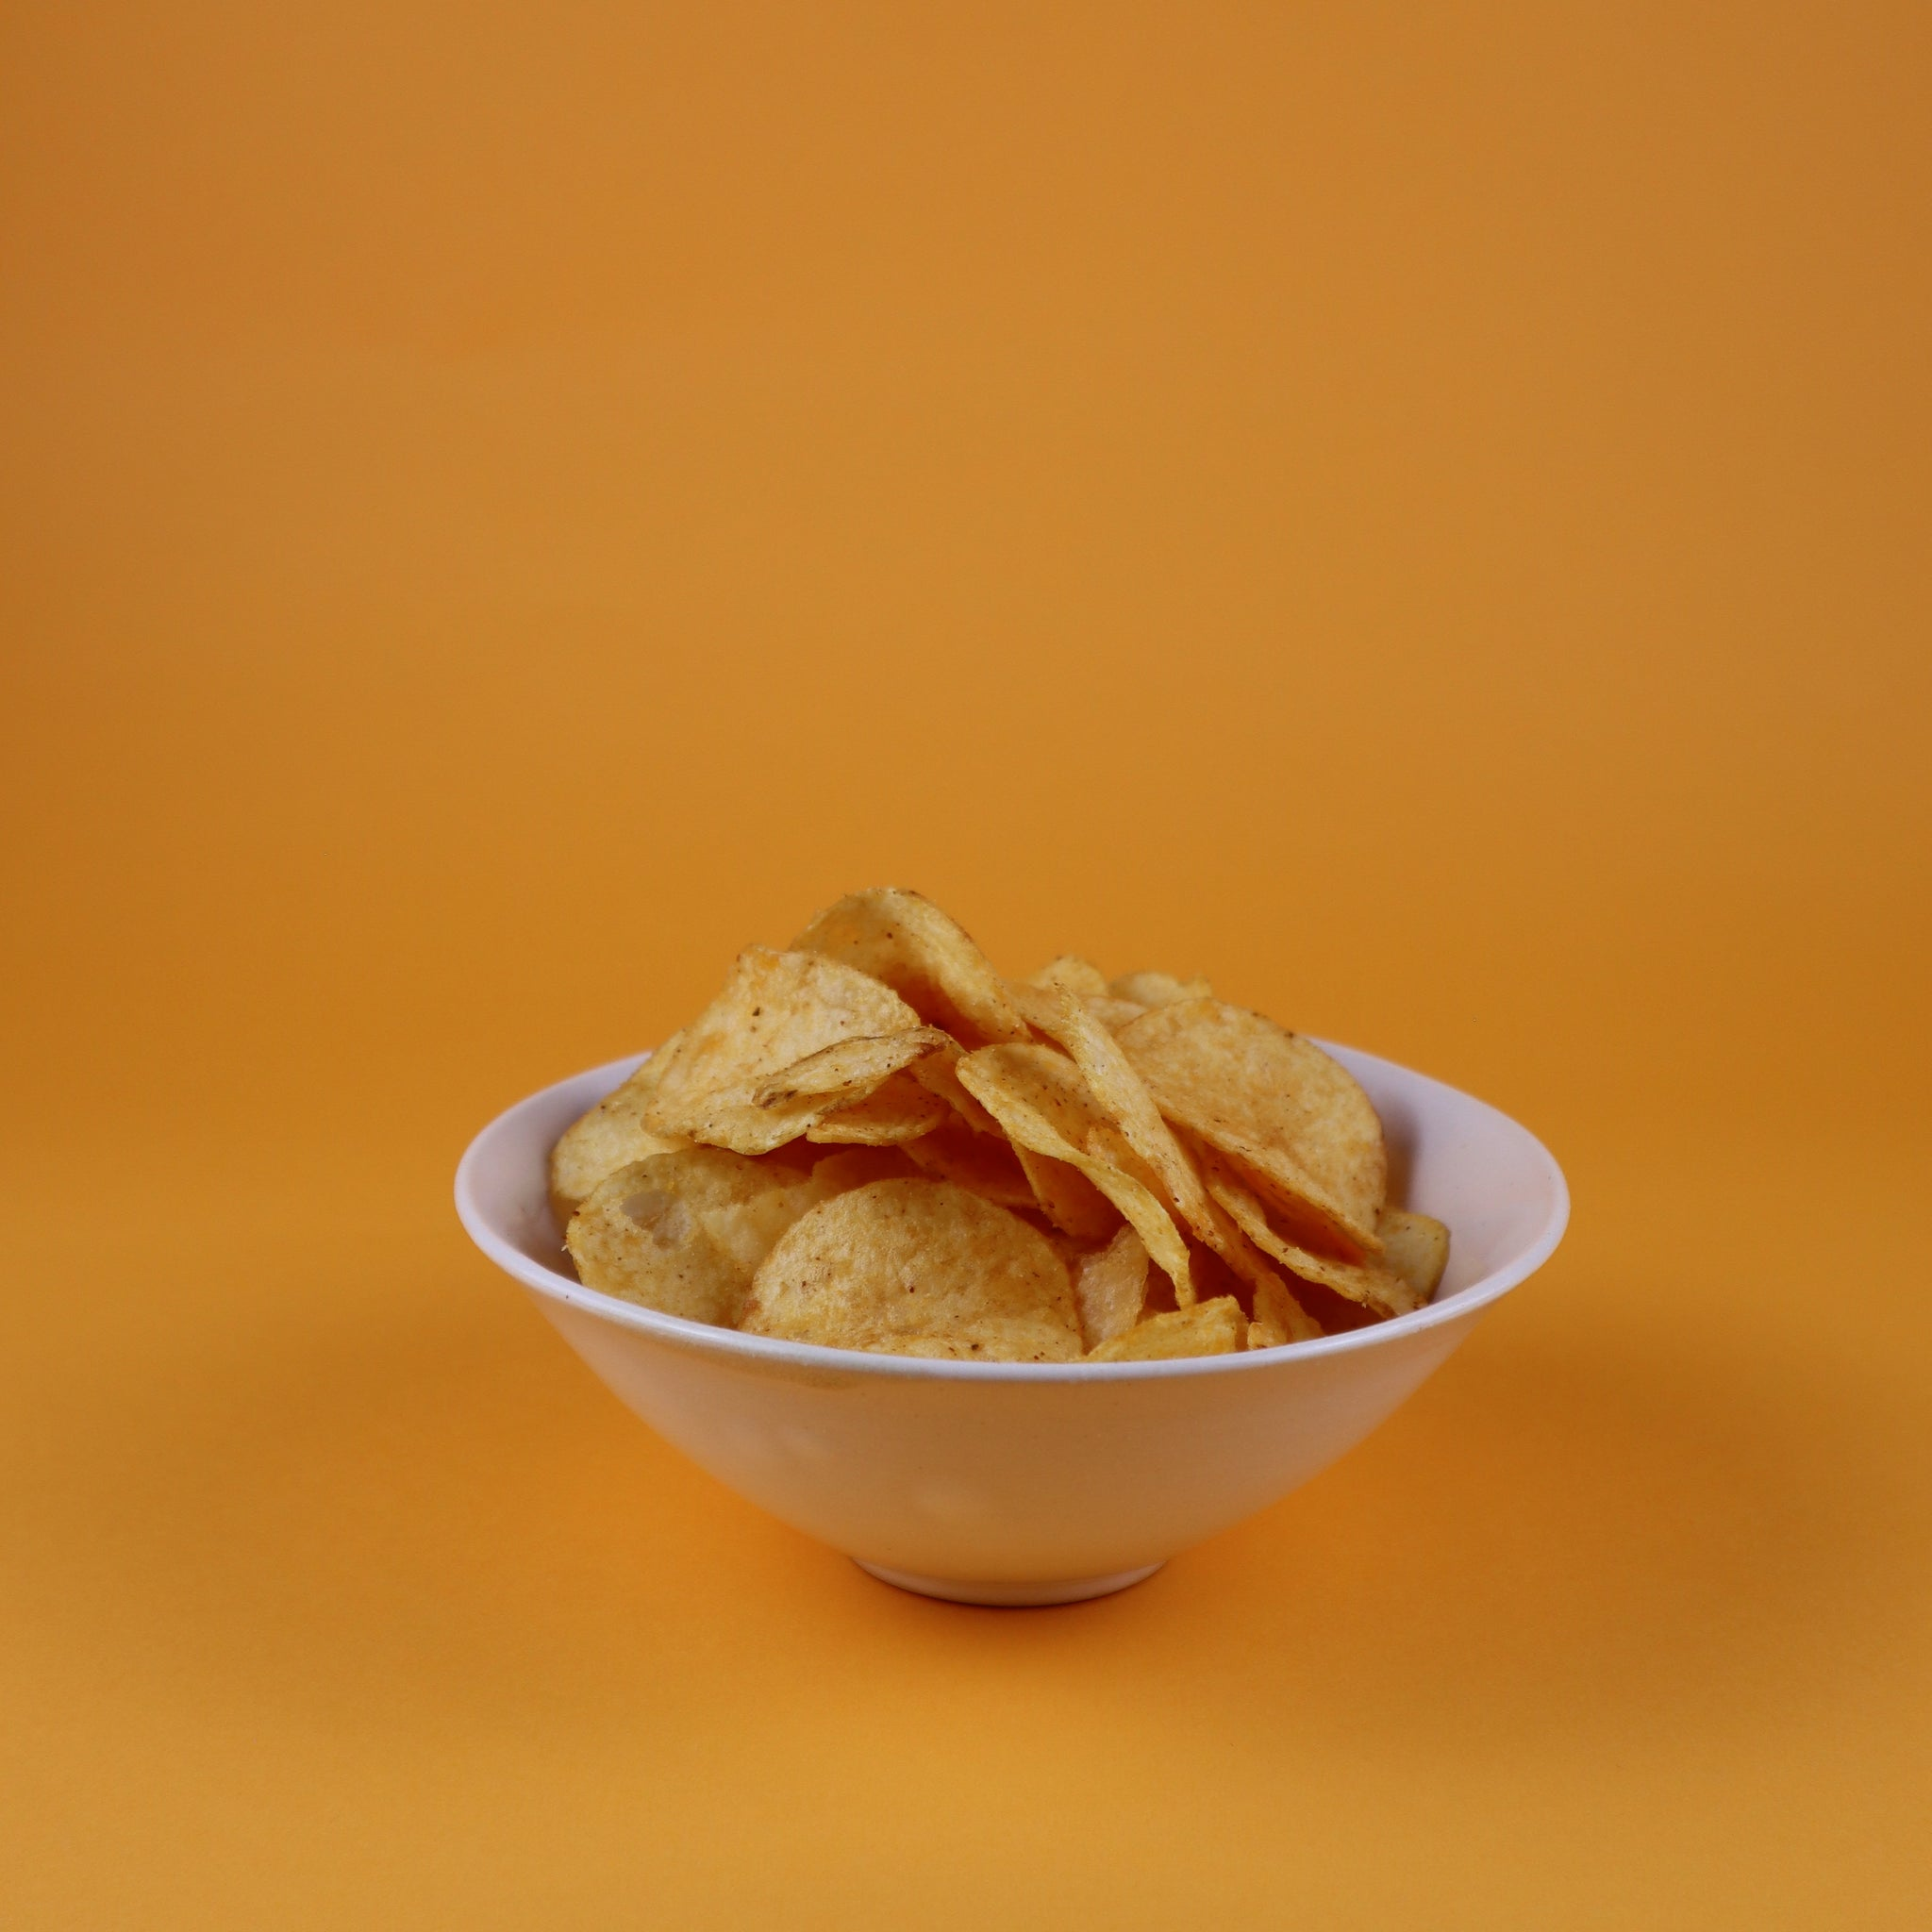 LAY'S SWEET CHILI PASTE FLAVOR POTATO CHIPS